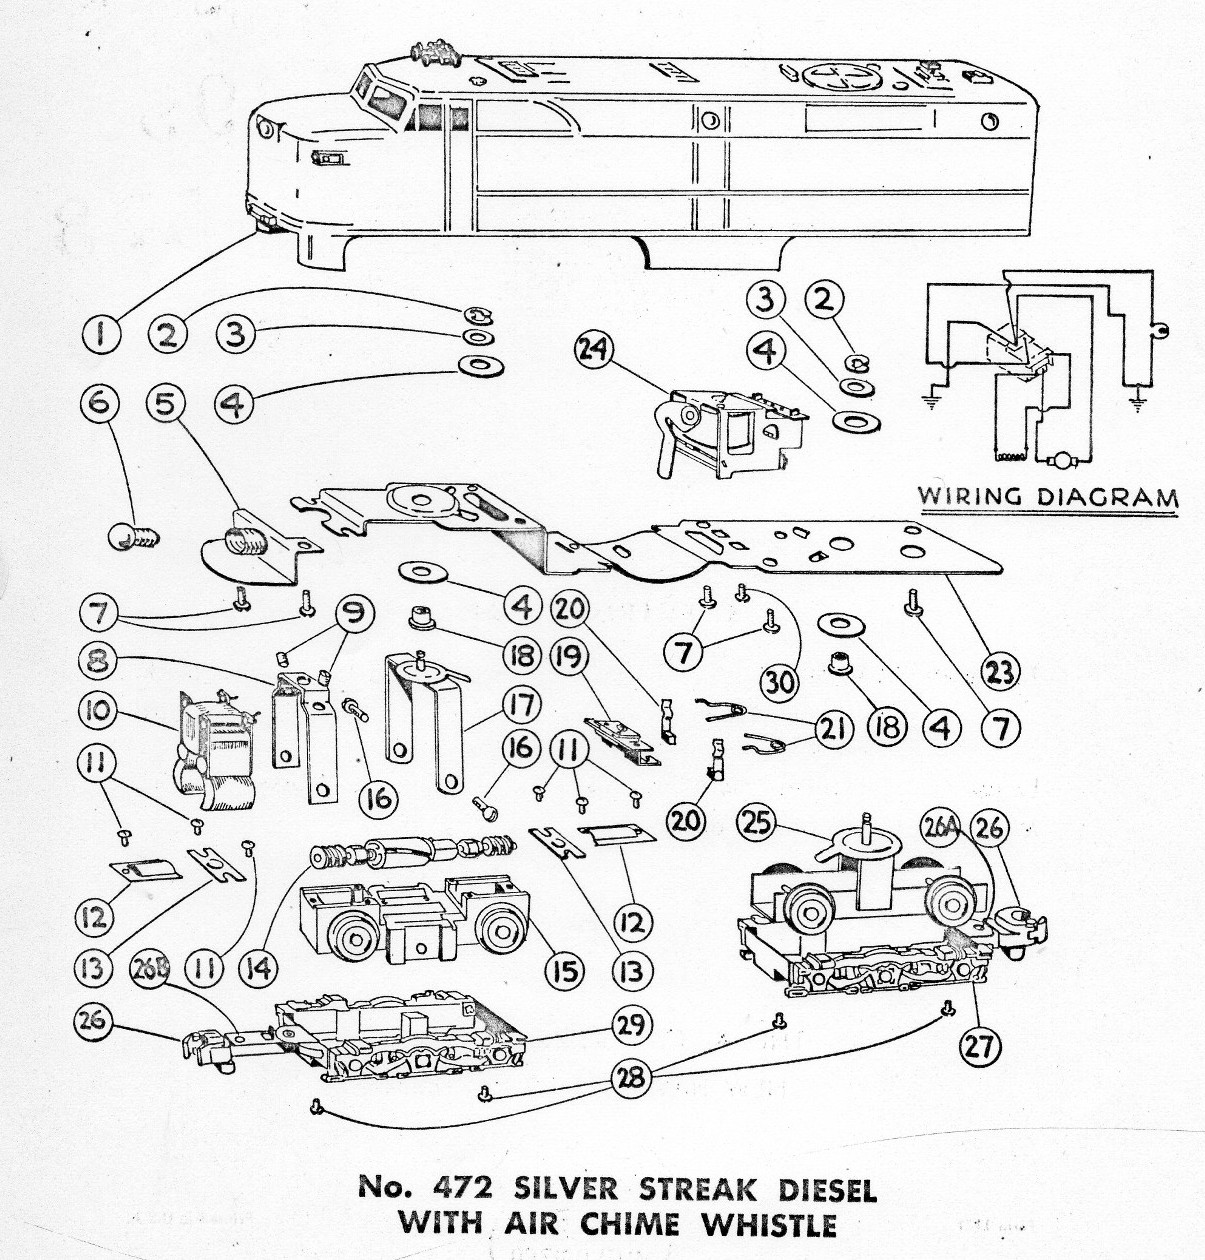 American Flyer Locomotive 472 Parts List & Diagram - Page 2